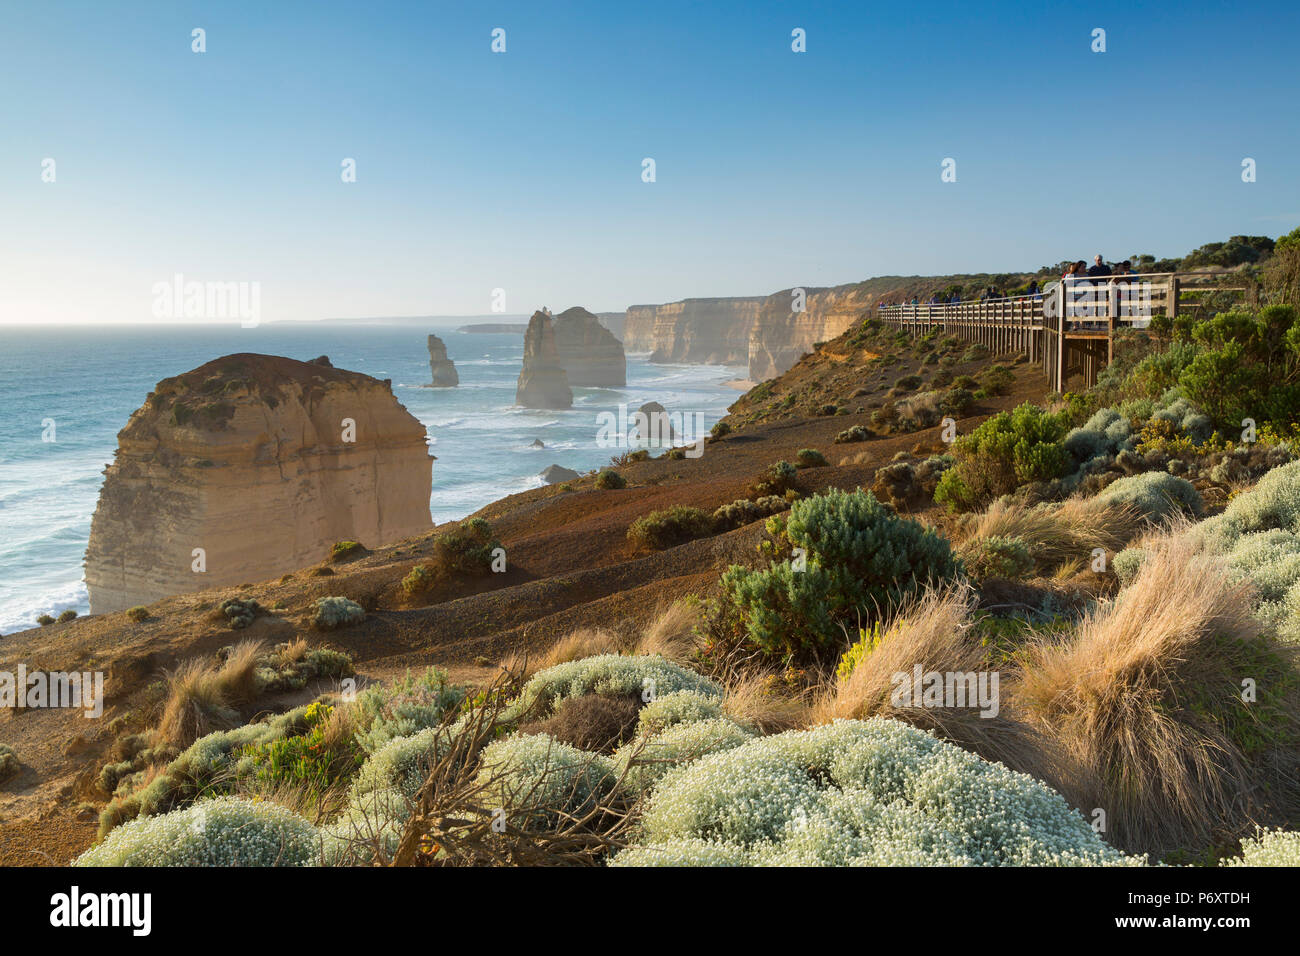 Douze Apôtres, Port Campbell National Park, Great Ocean Road, Victoria, Australie Photo Stock